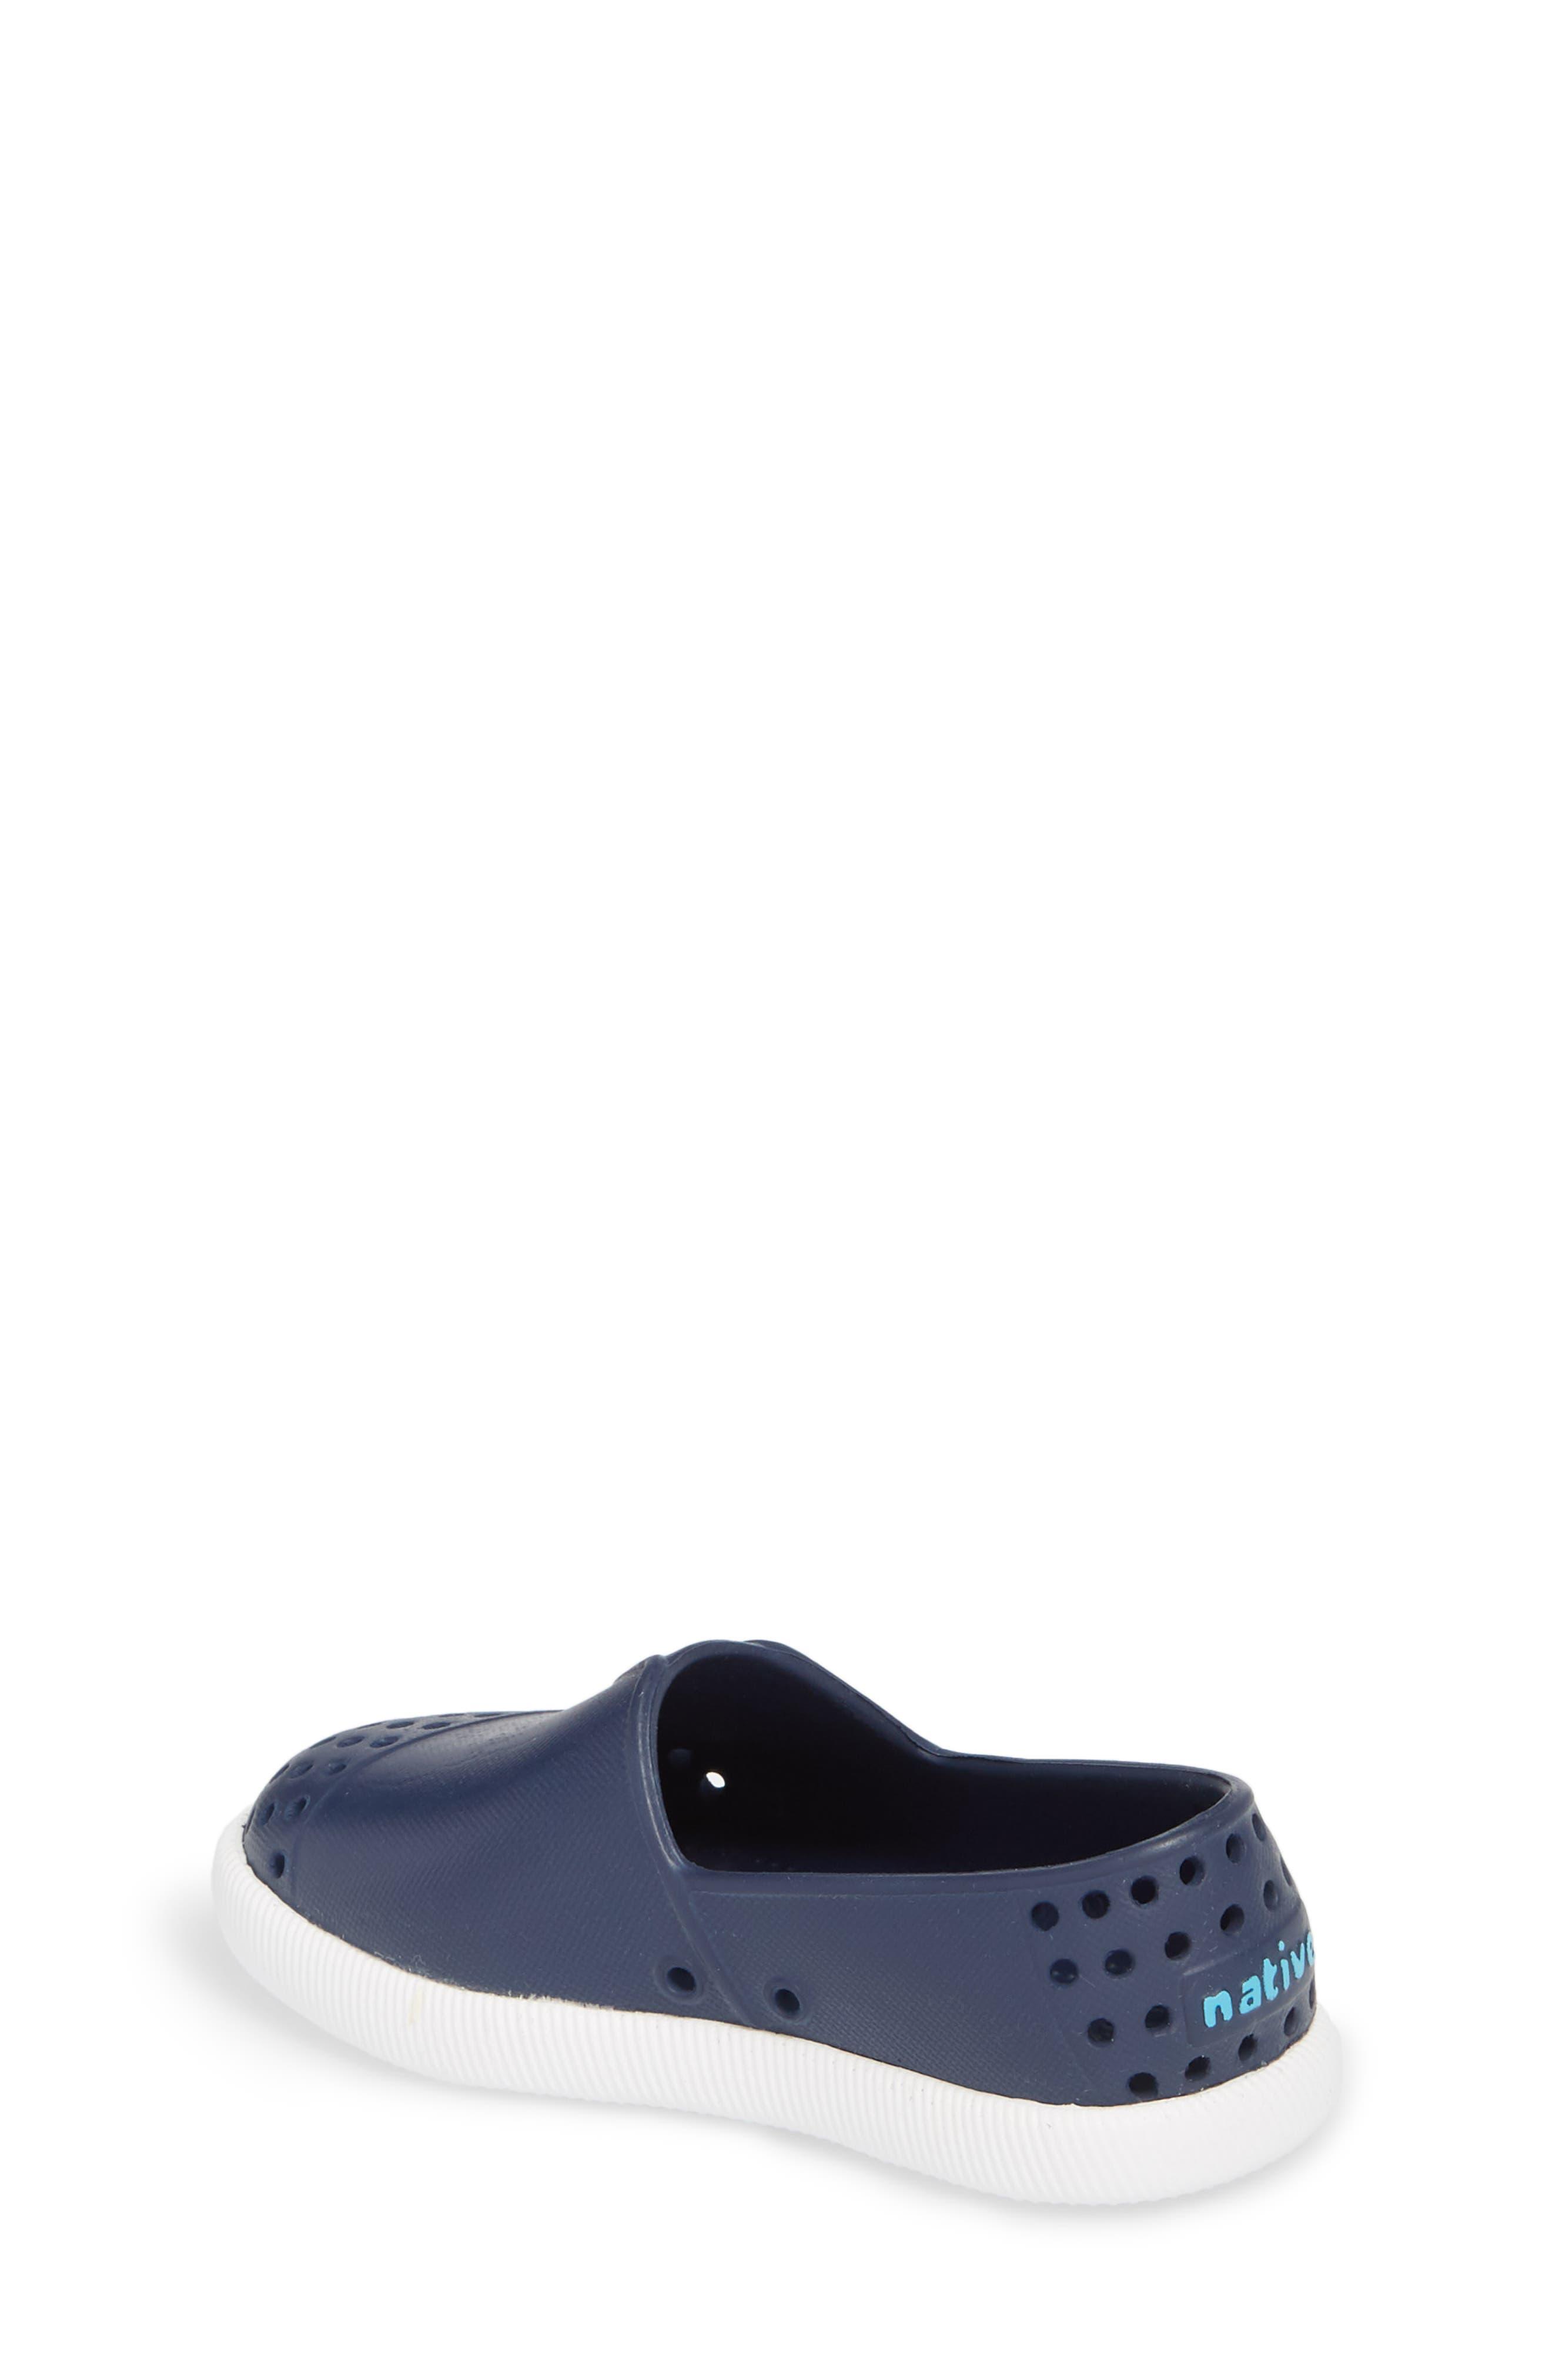 Verona Perforated Water Friendly Slip-On,                             Alternate thumbnail 2, color,                             414